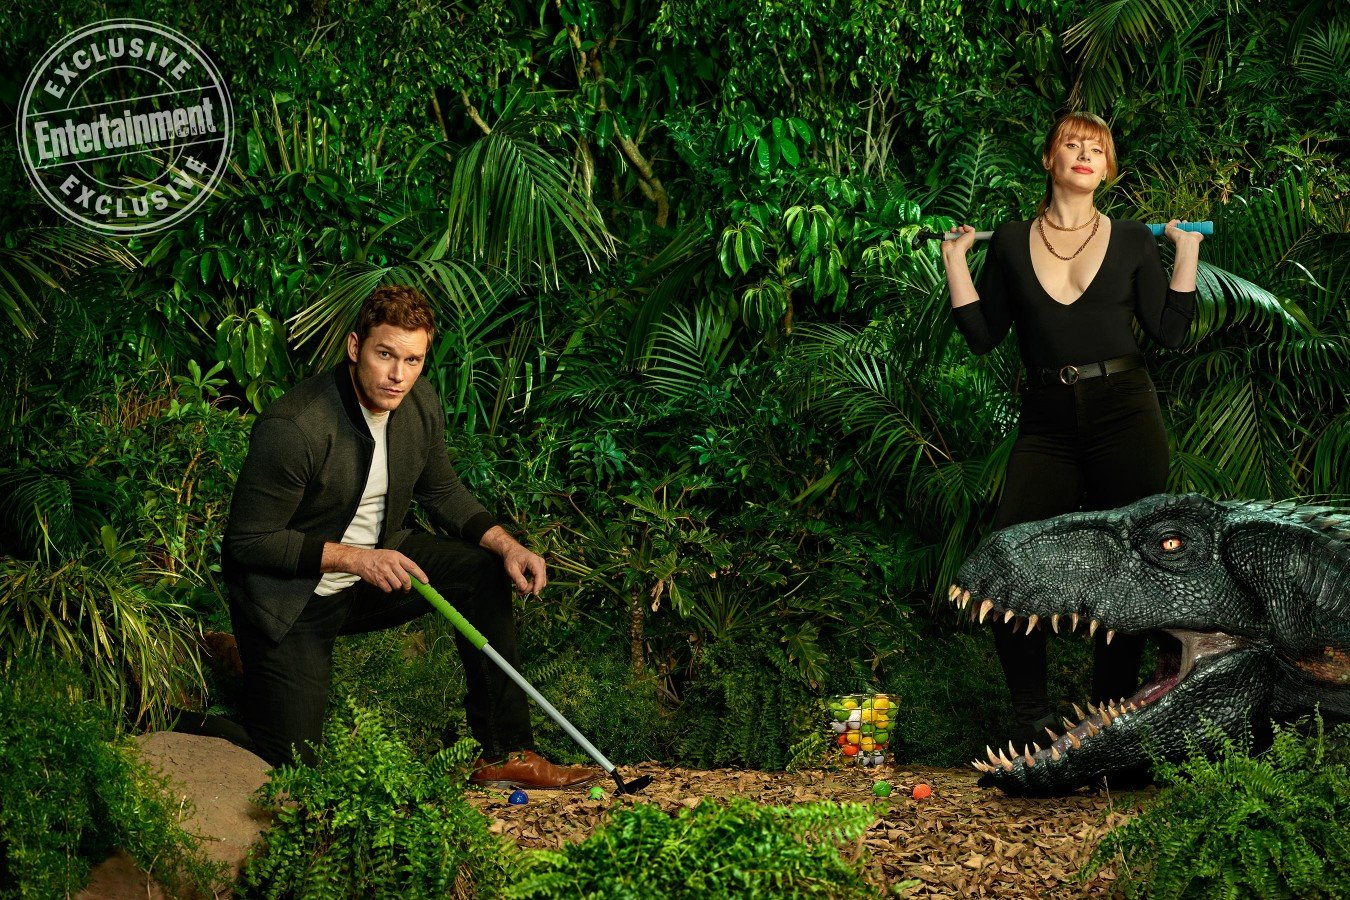 Bryce Dallas Howard Says Jurassic Park Characters Could Return